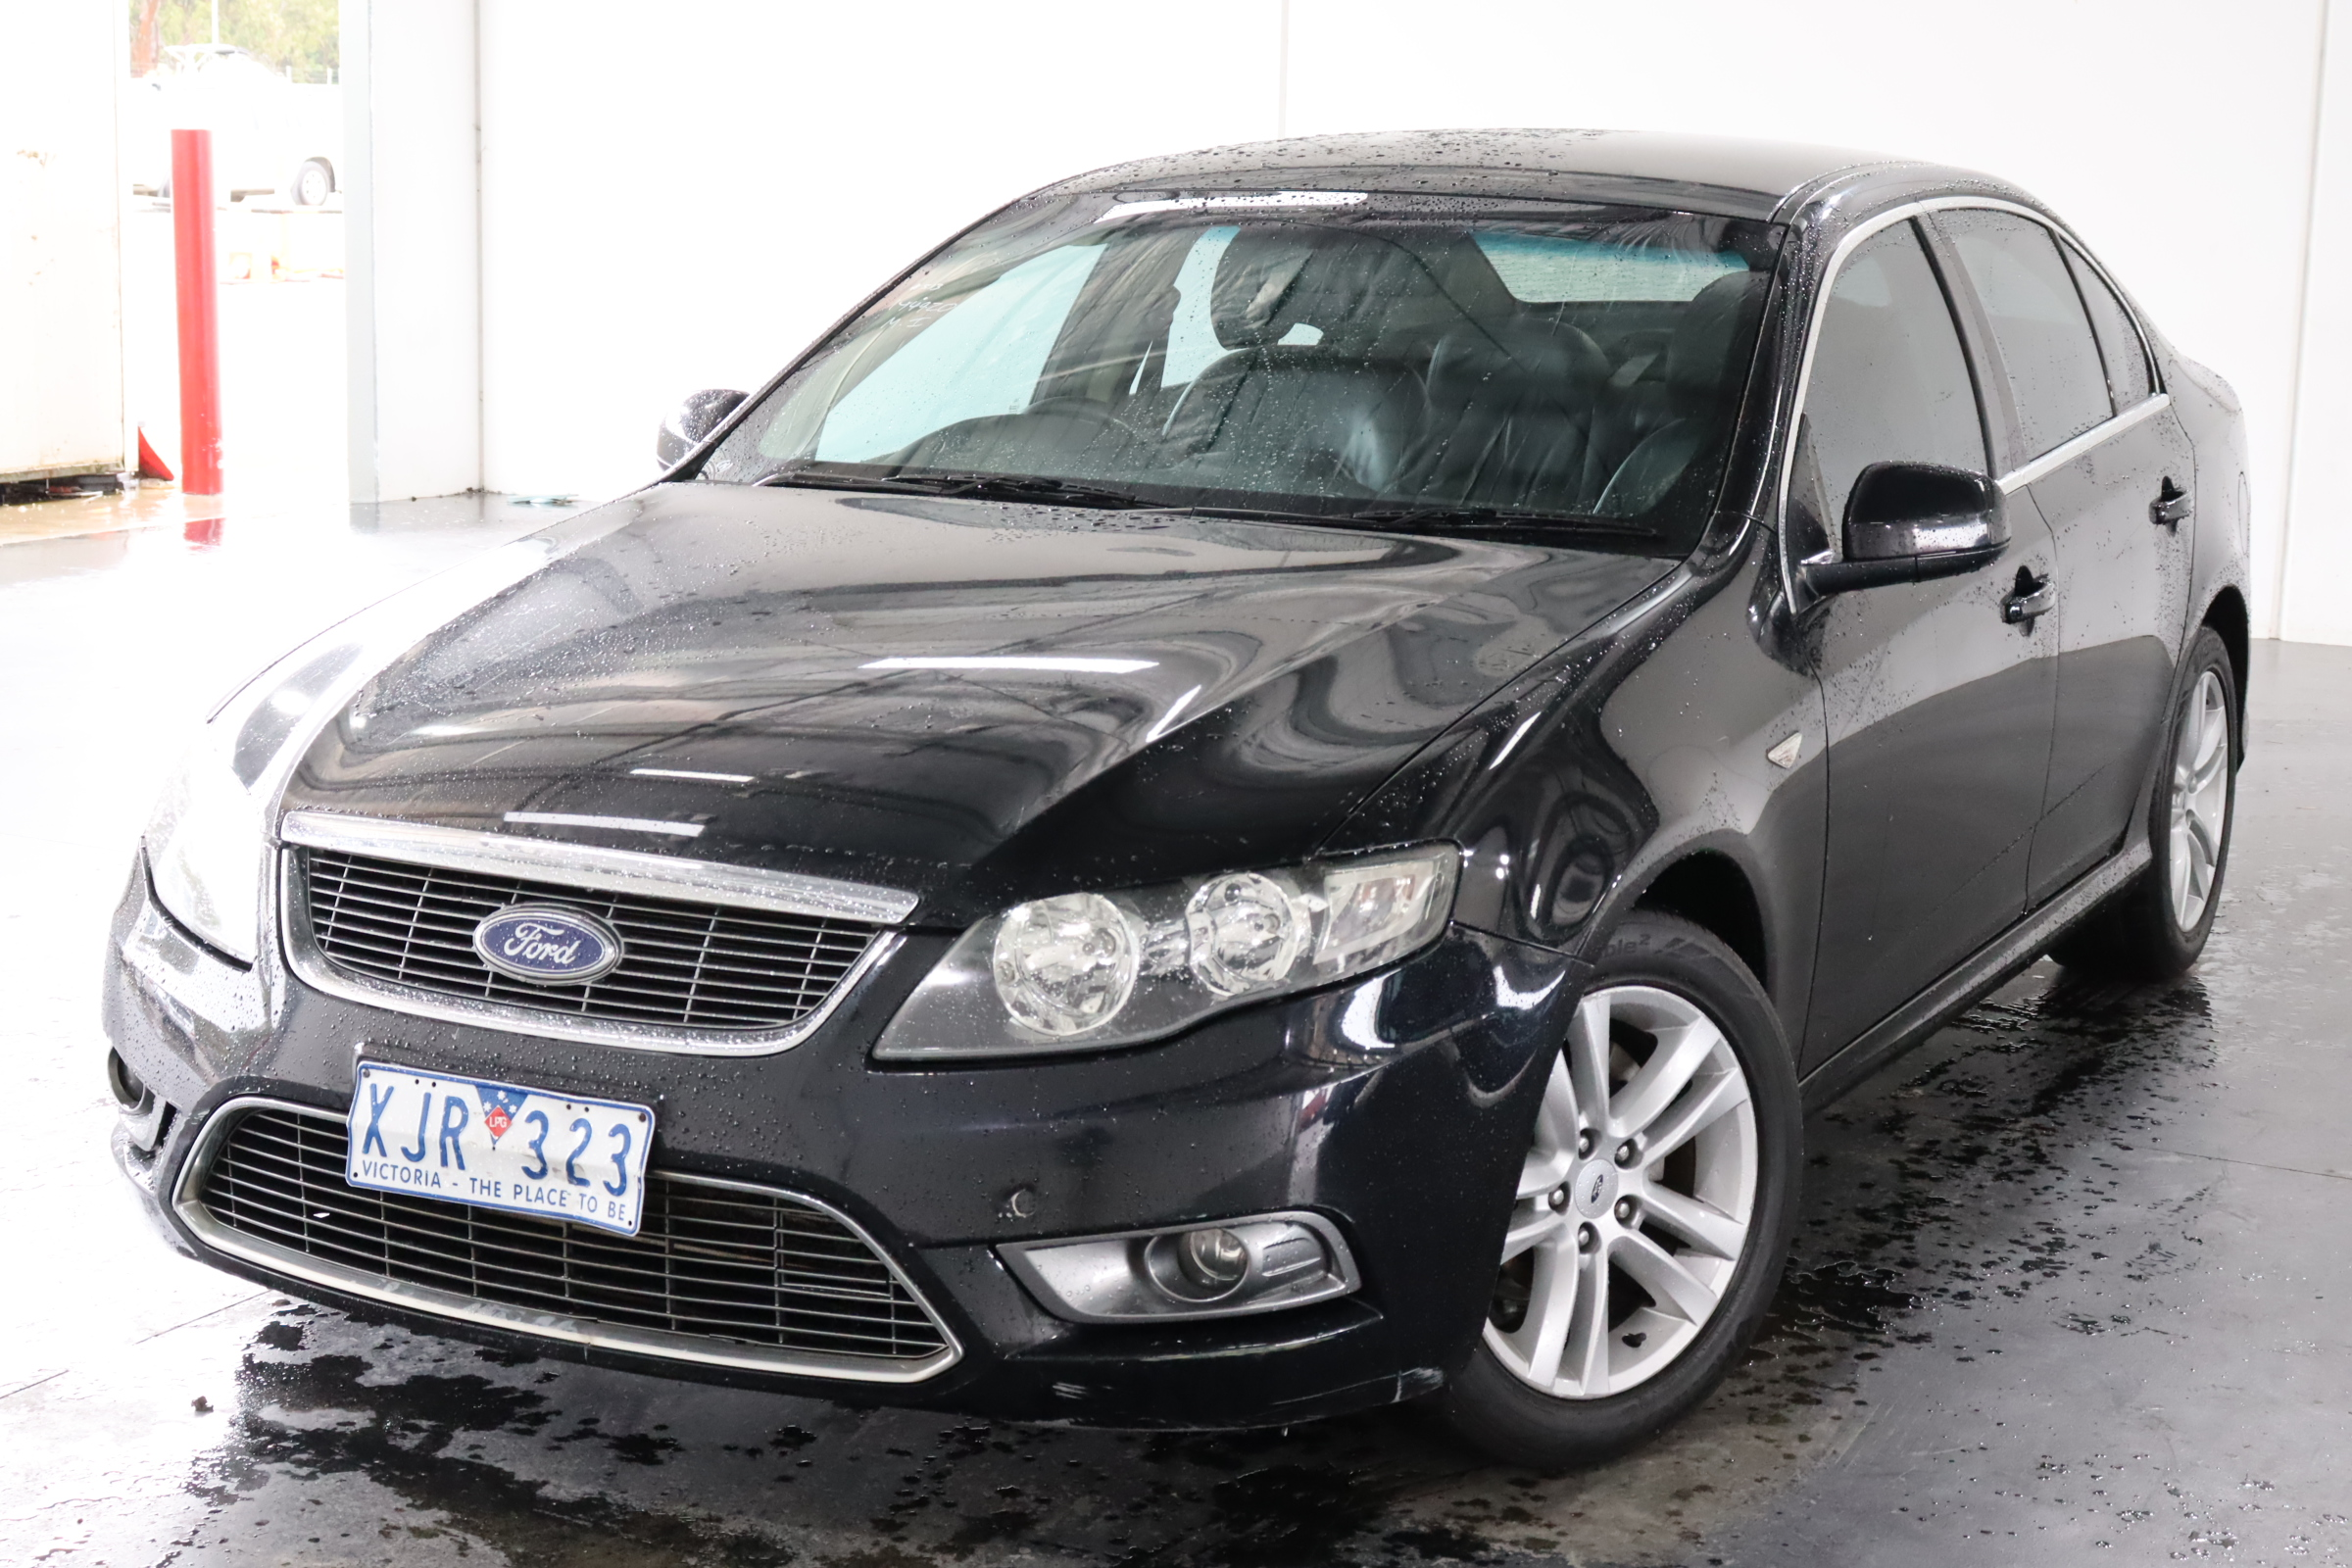 2009 Ford Falcon G6 FG Automatic Sedan